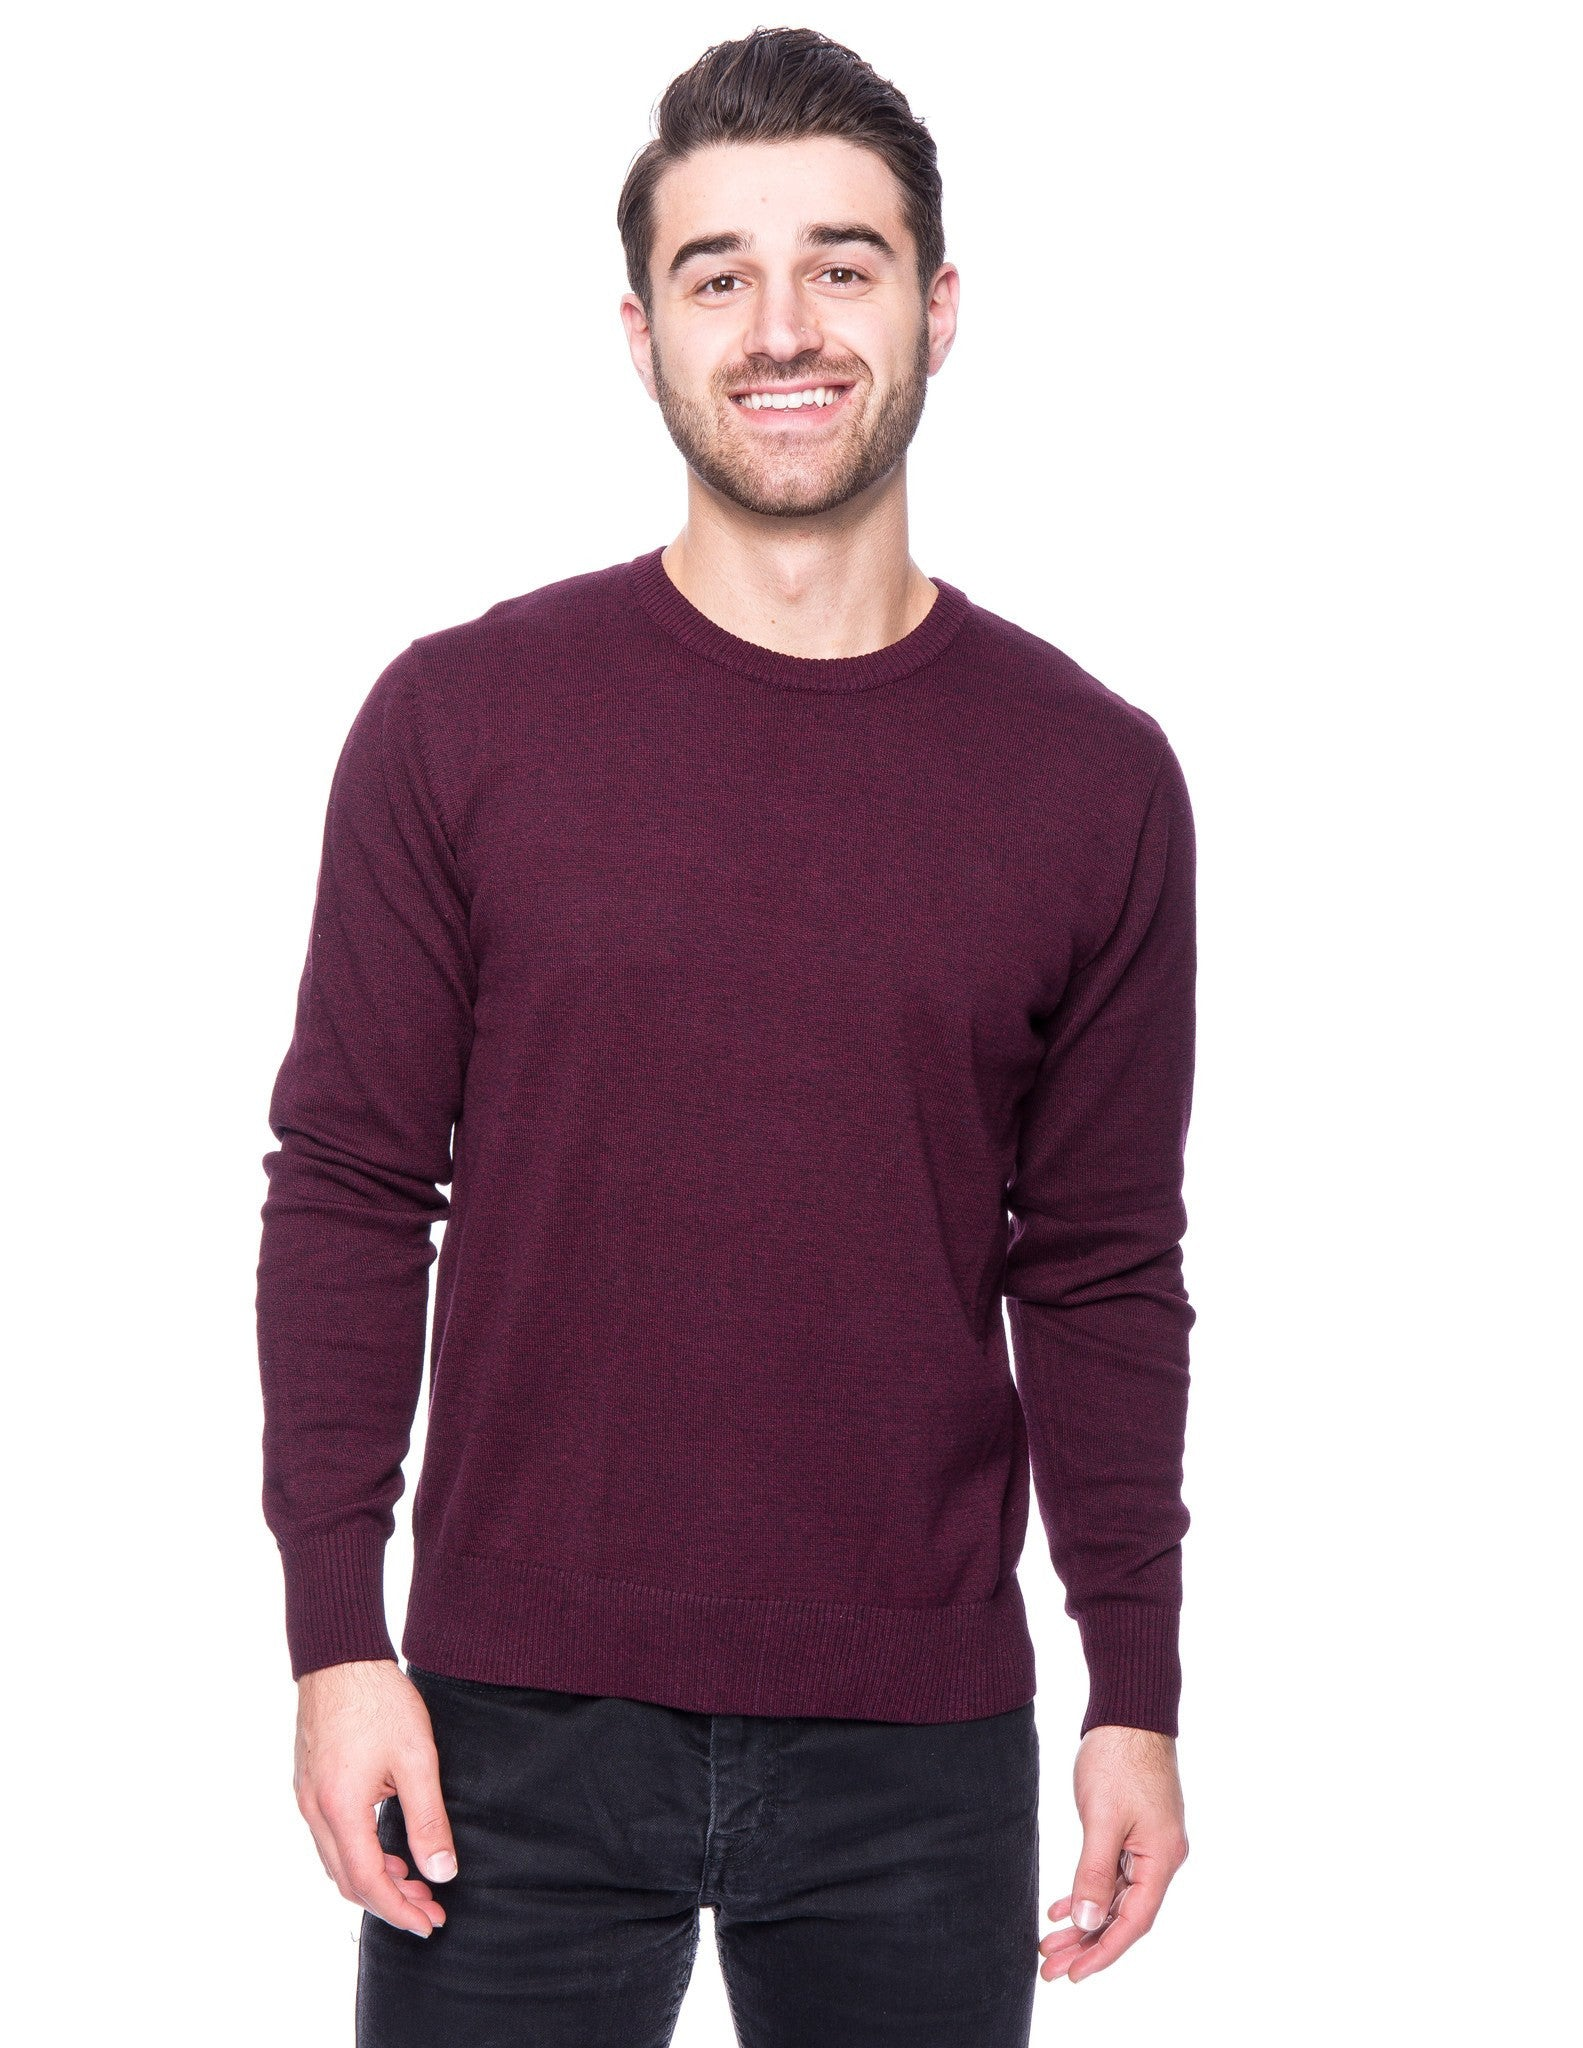 Cotton Crew Neck Sweater - Marl Purple/Black